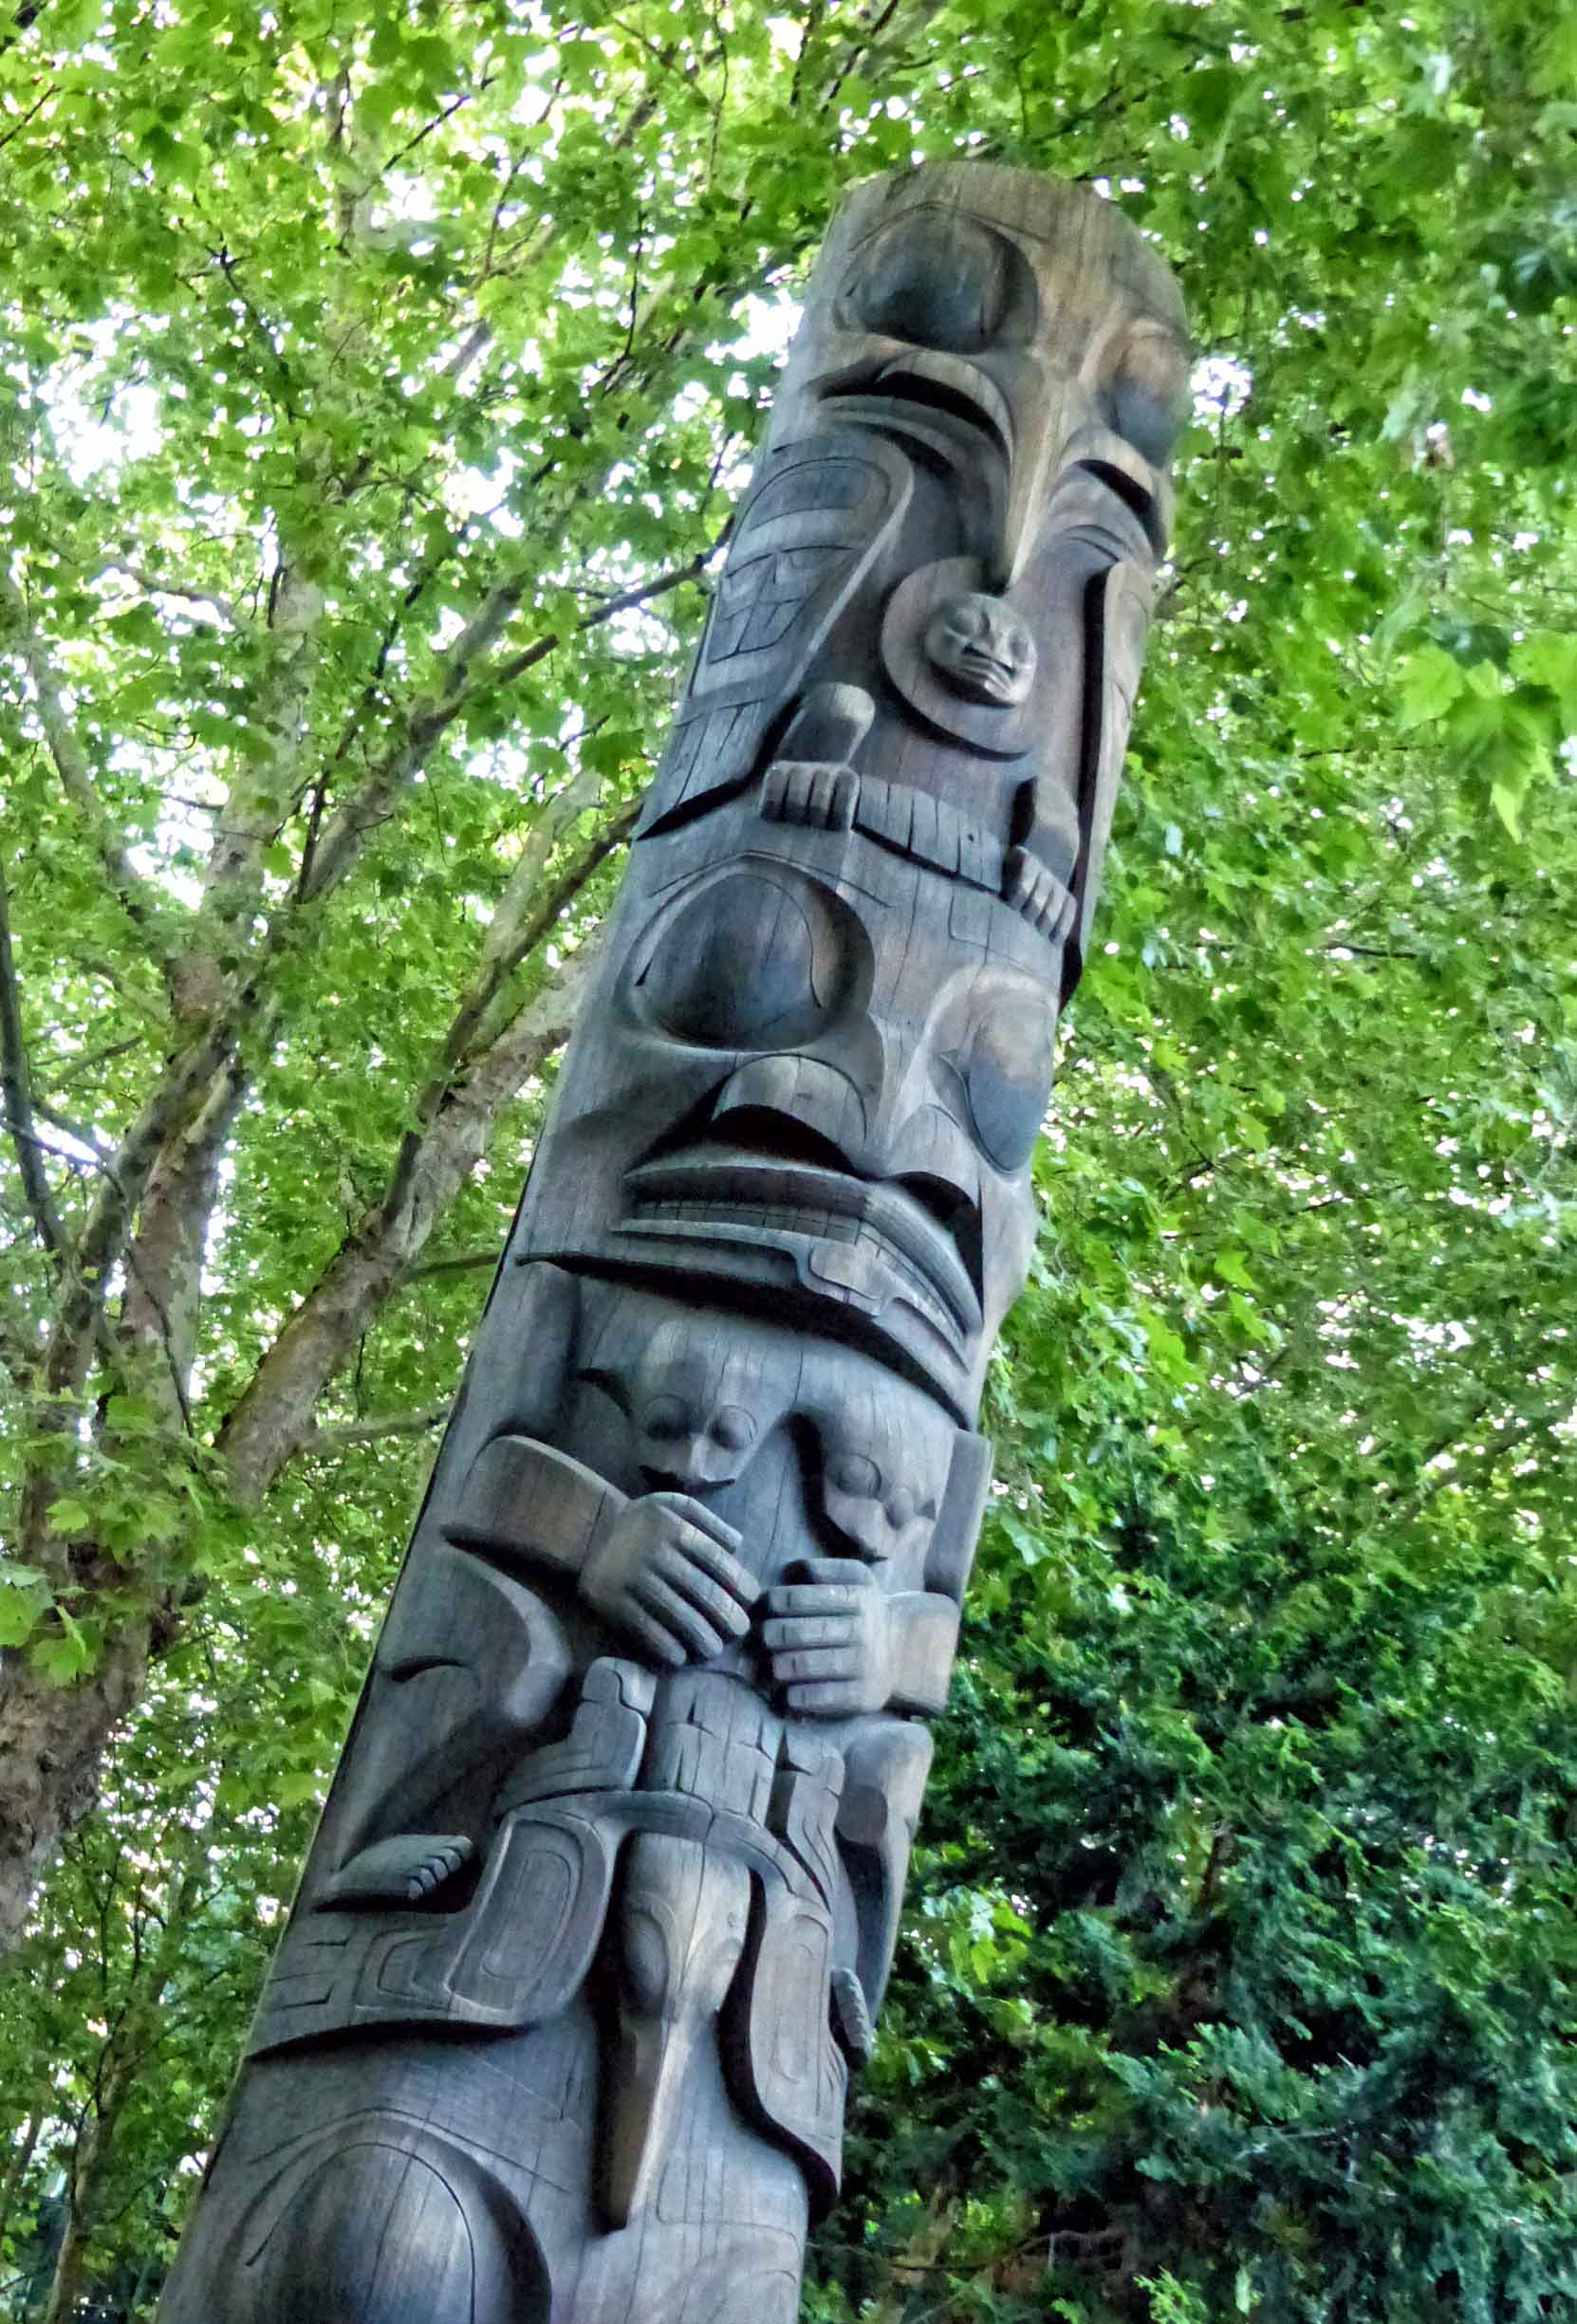 Totem pole and trees